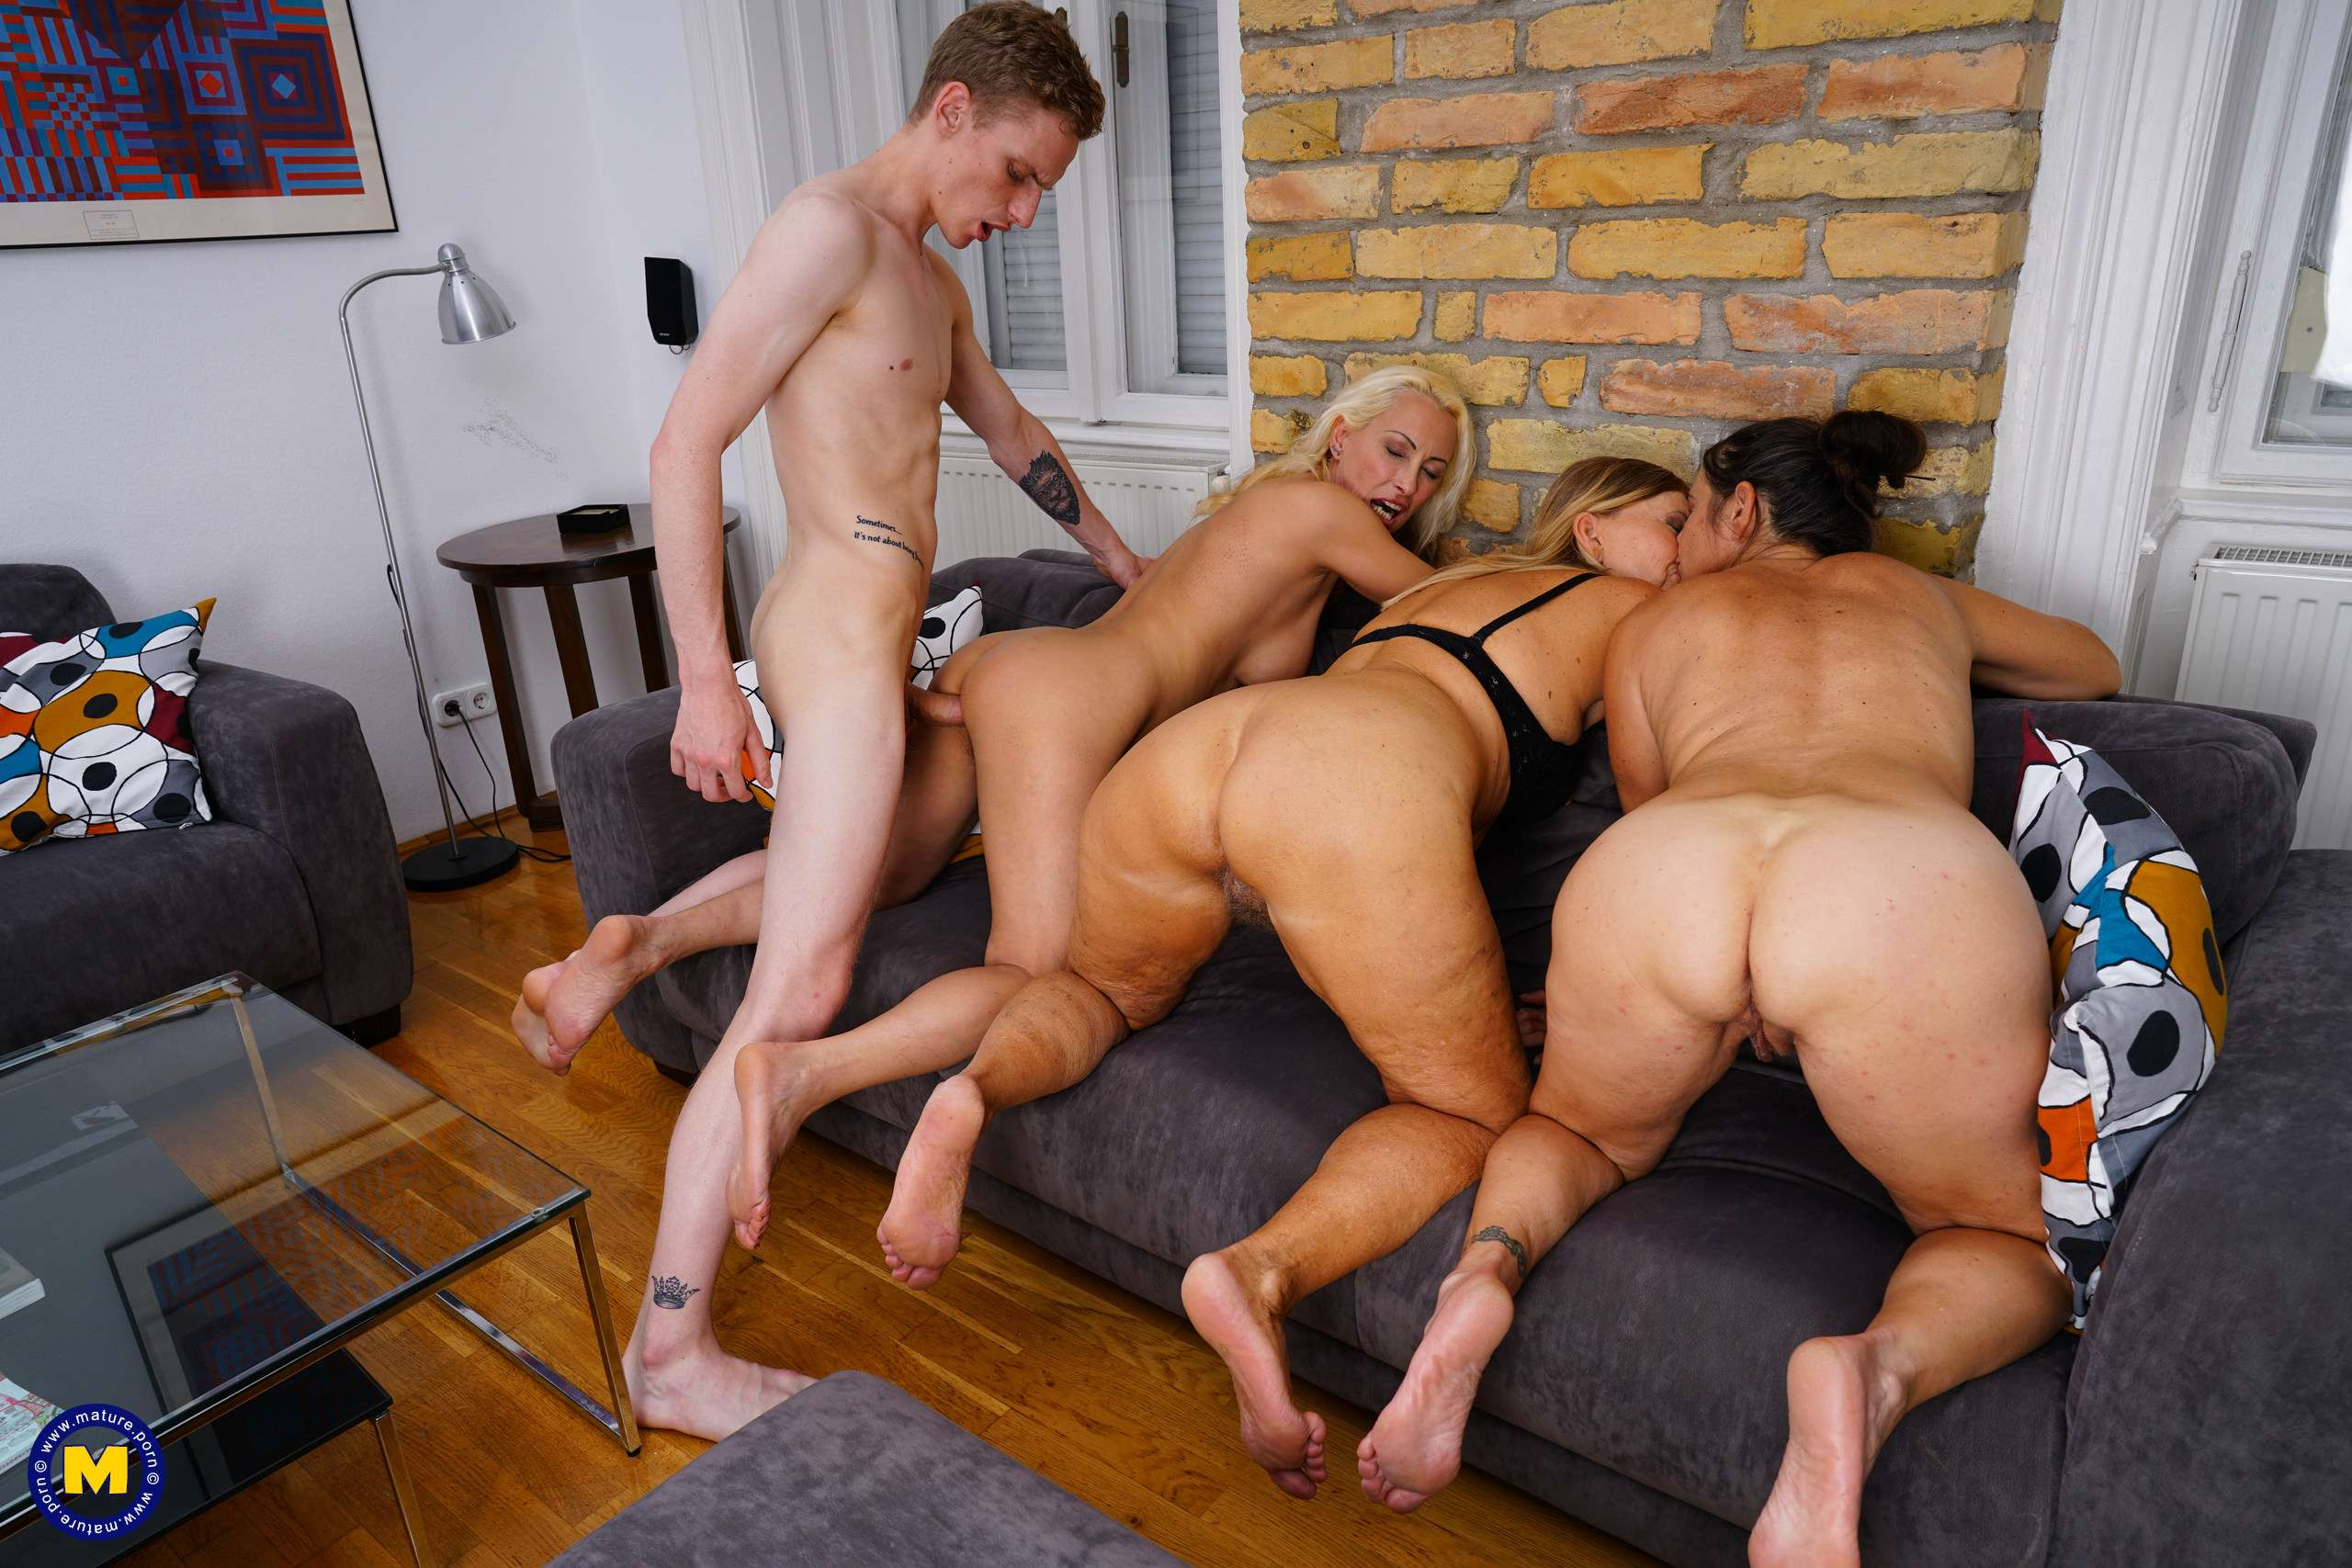 Two matures one guy porn in most relevant adult pics